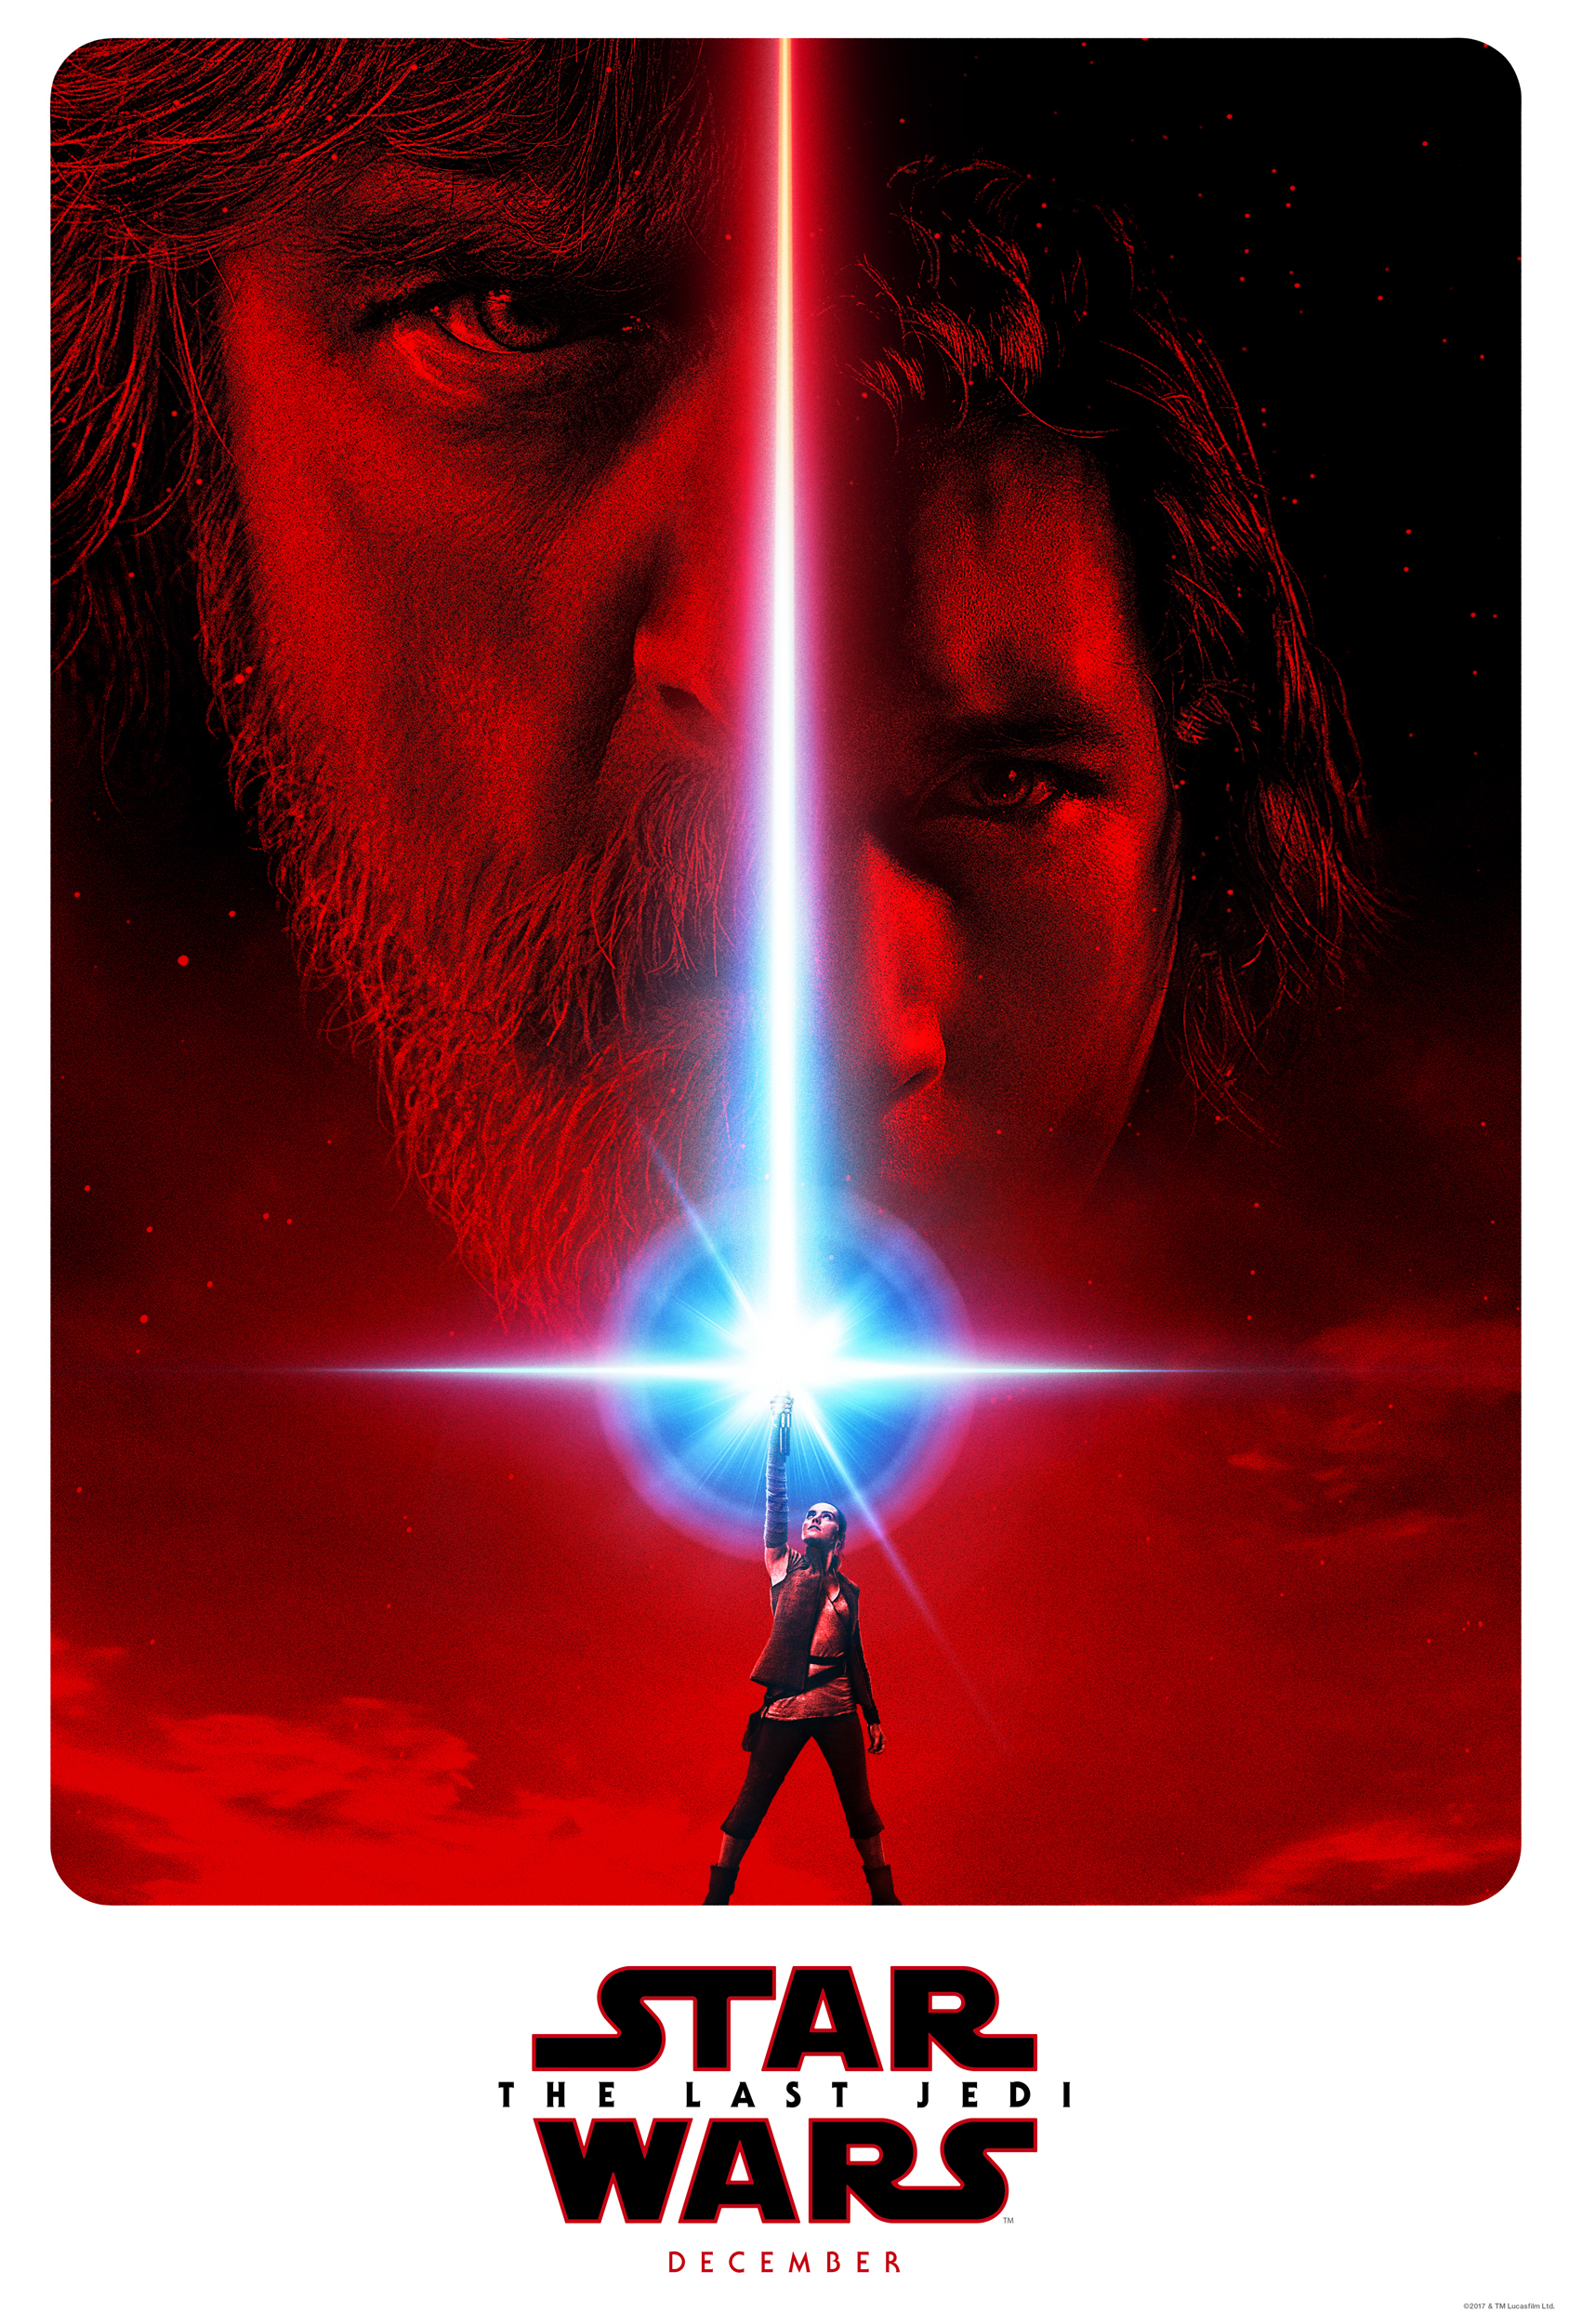 What We've Learned at the Star Wars: The Last Jedi Panel